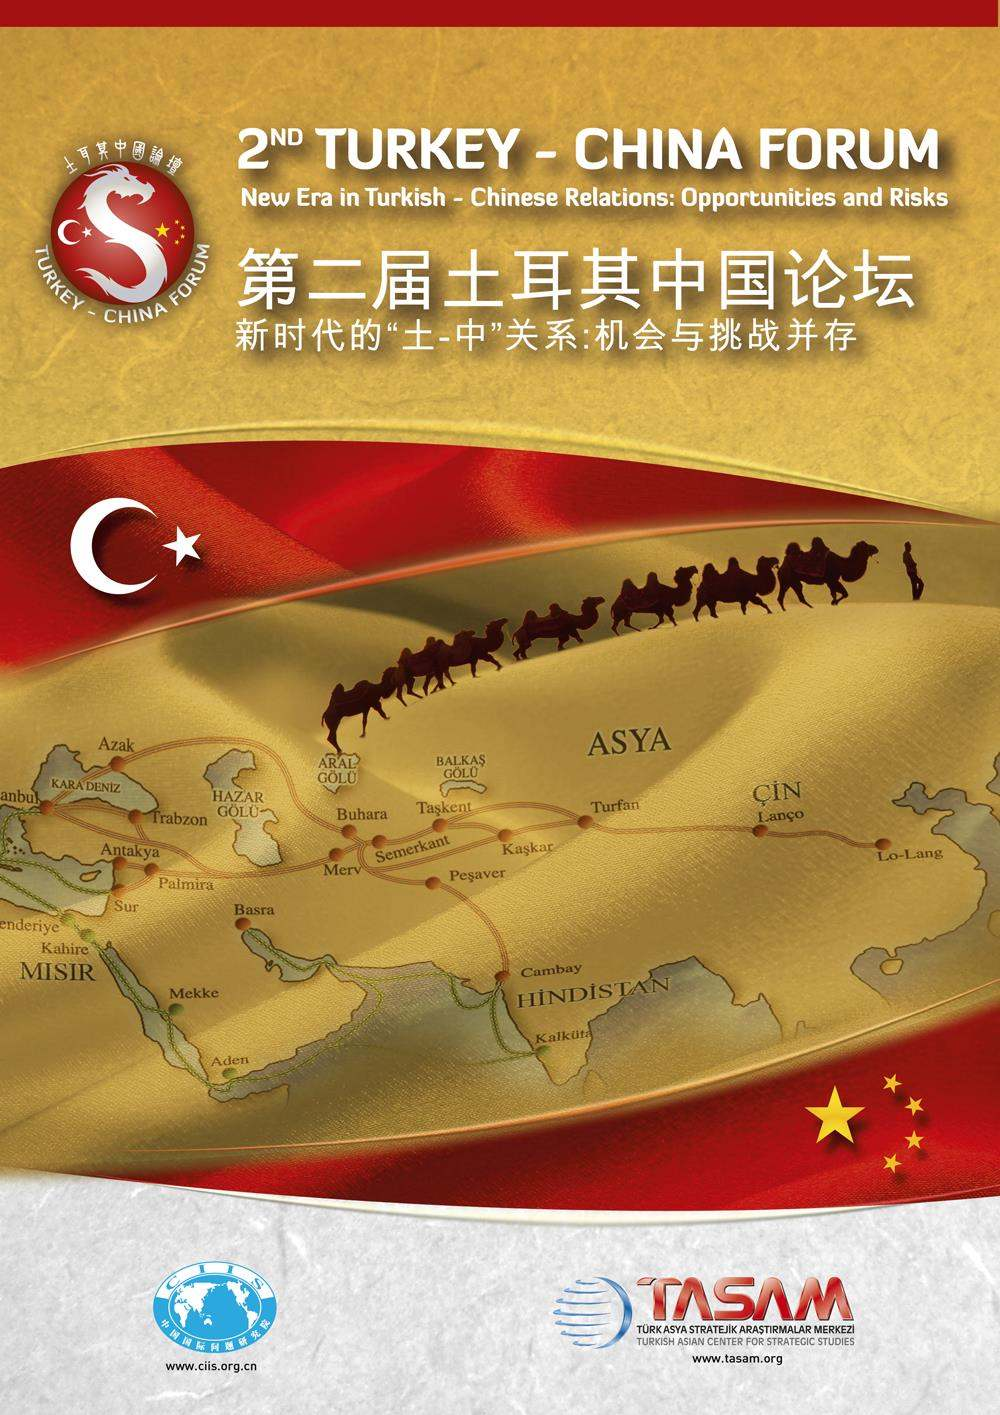 2nd Turkey - China Forum